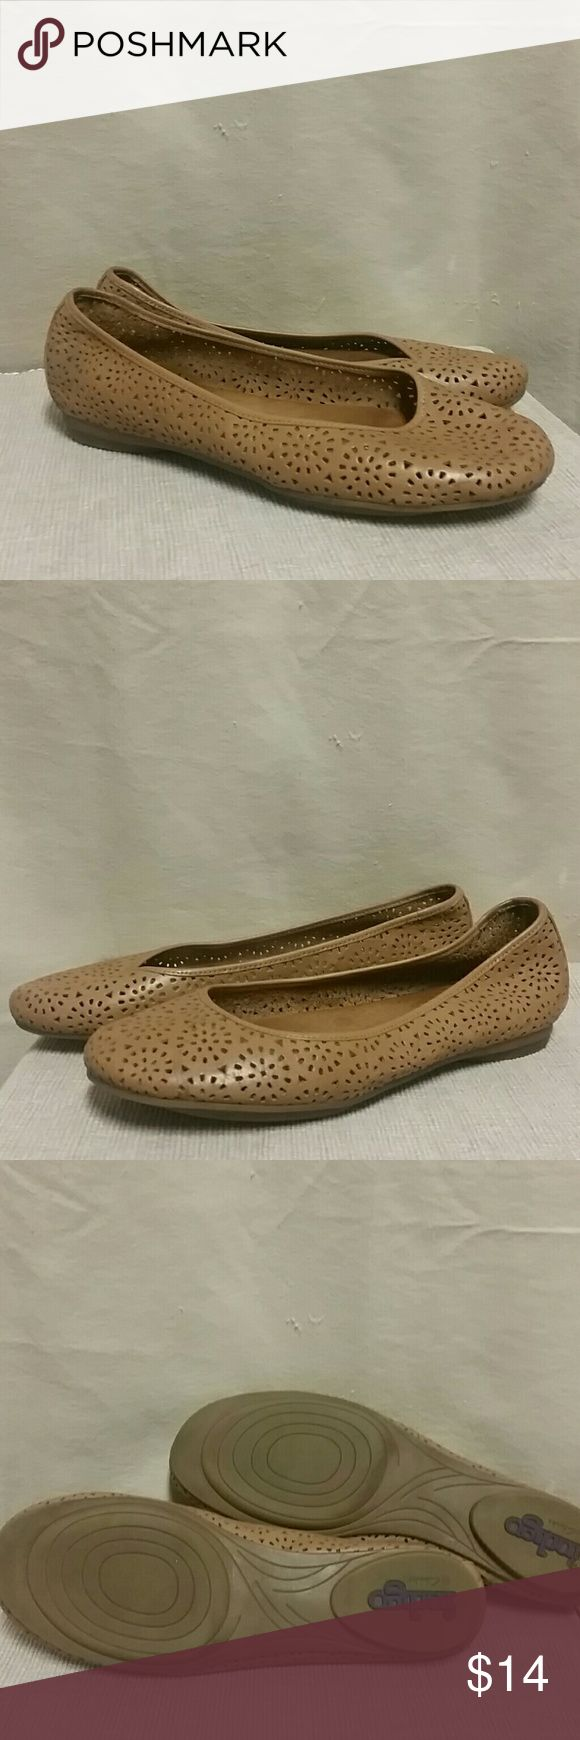 Indigo by Clarks brown ballet leather flats 9 Preowned condition Clarks Indigo ballet flat, size 9, perforated, casual shoes Clarks Shoes Flats & Loafers